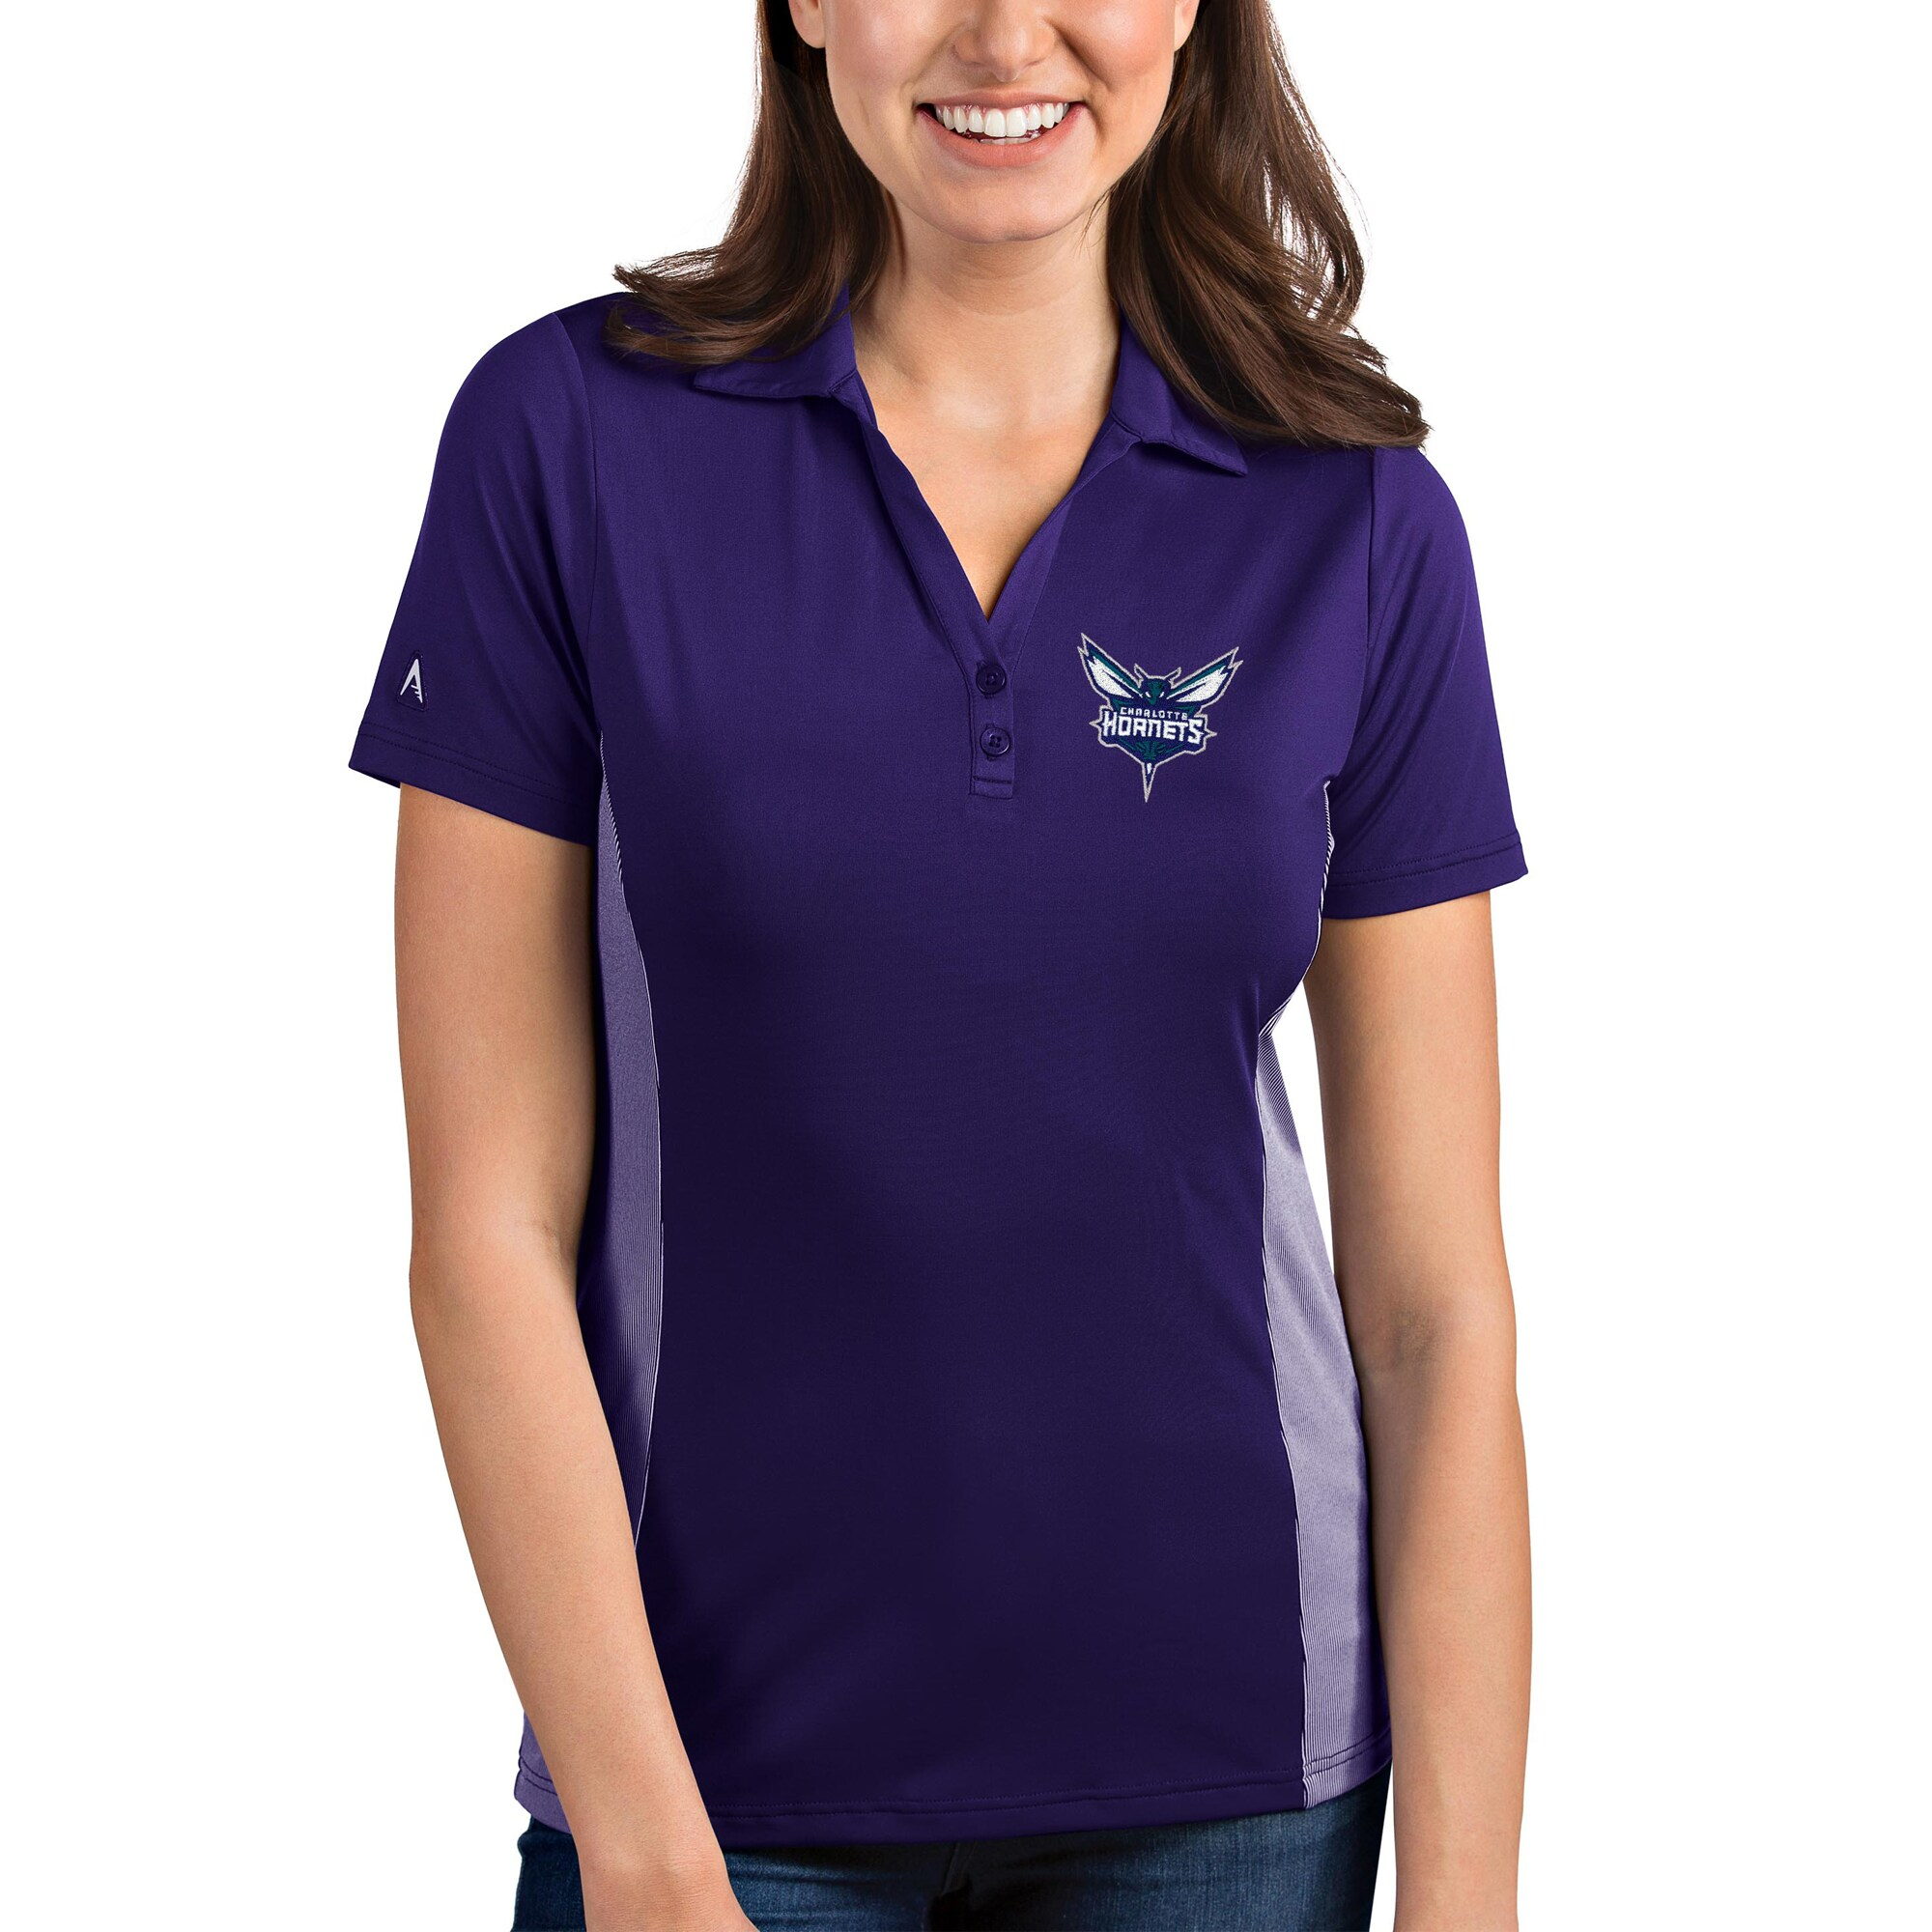 Charlotte Hornets Antigua Women's Venture Polo - Purple/White